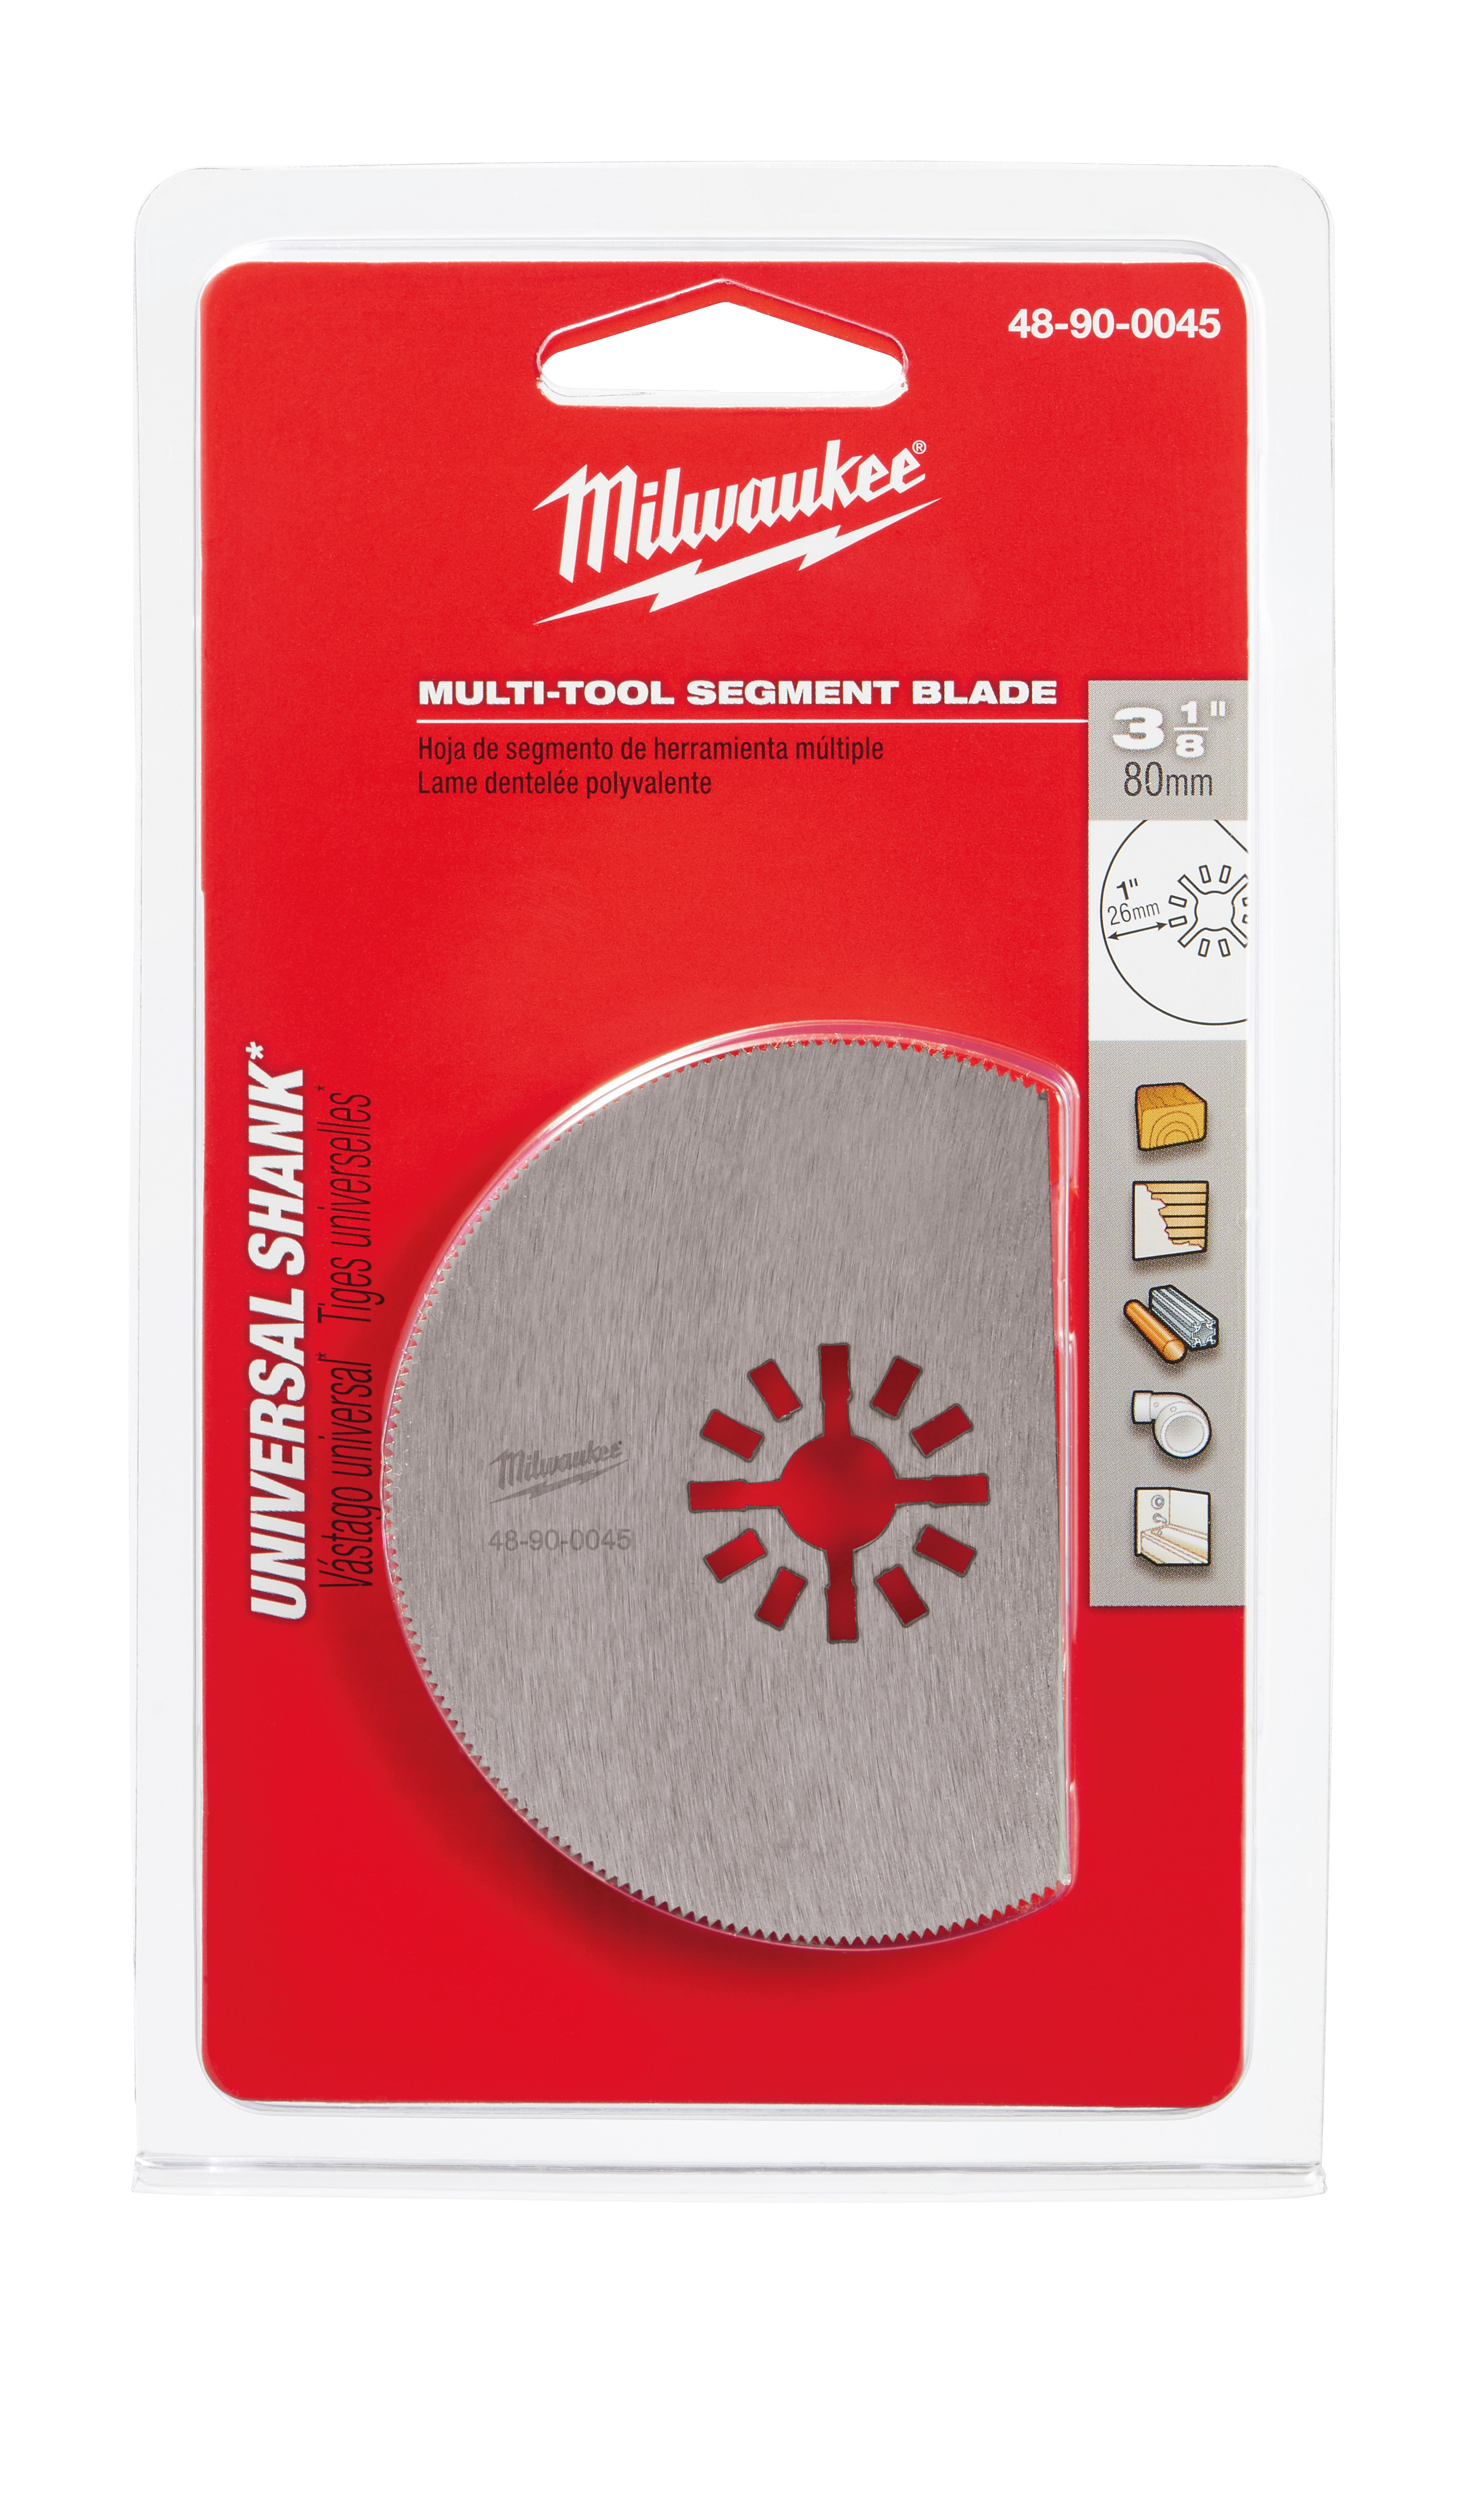 Milwaukee® 48-90-0045 Multi-Tool Blade, For Use With Oscillating Tool, 3-1/8 in Cutting Dia, HSS